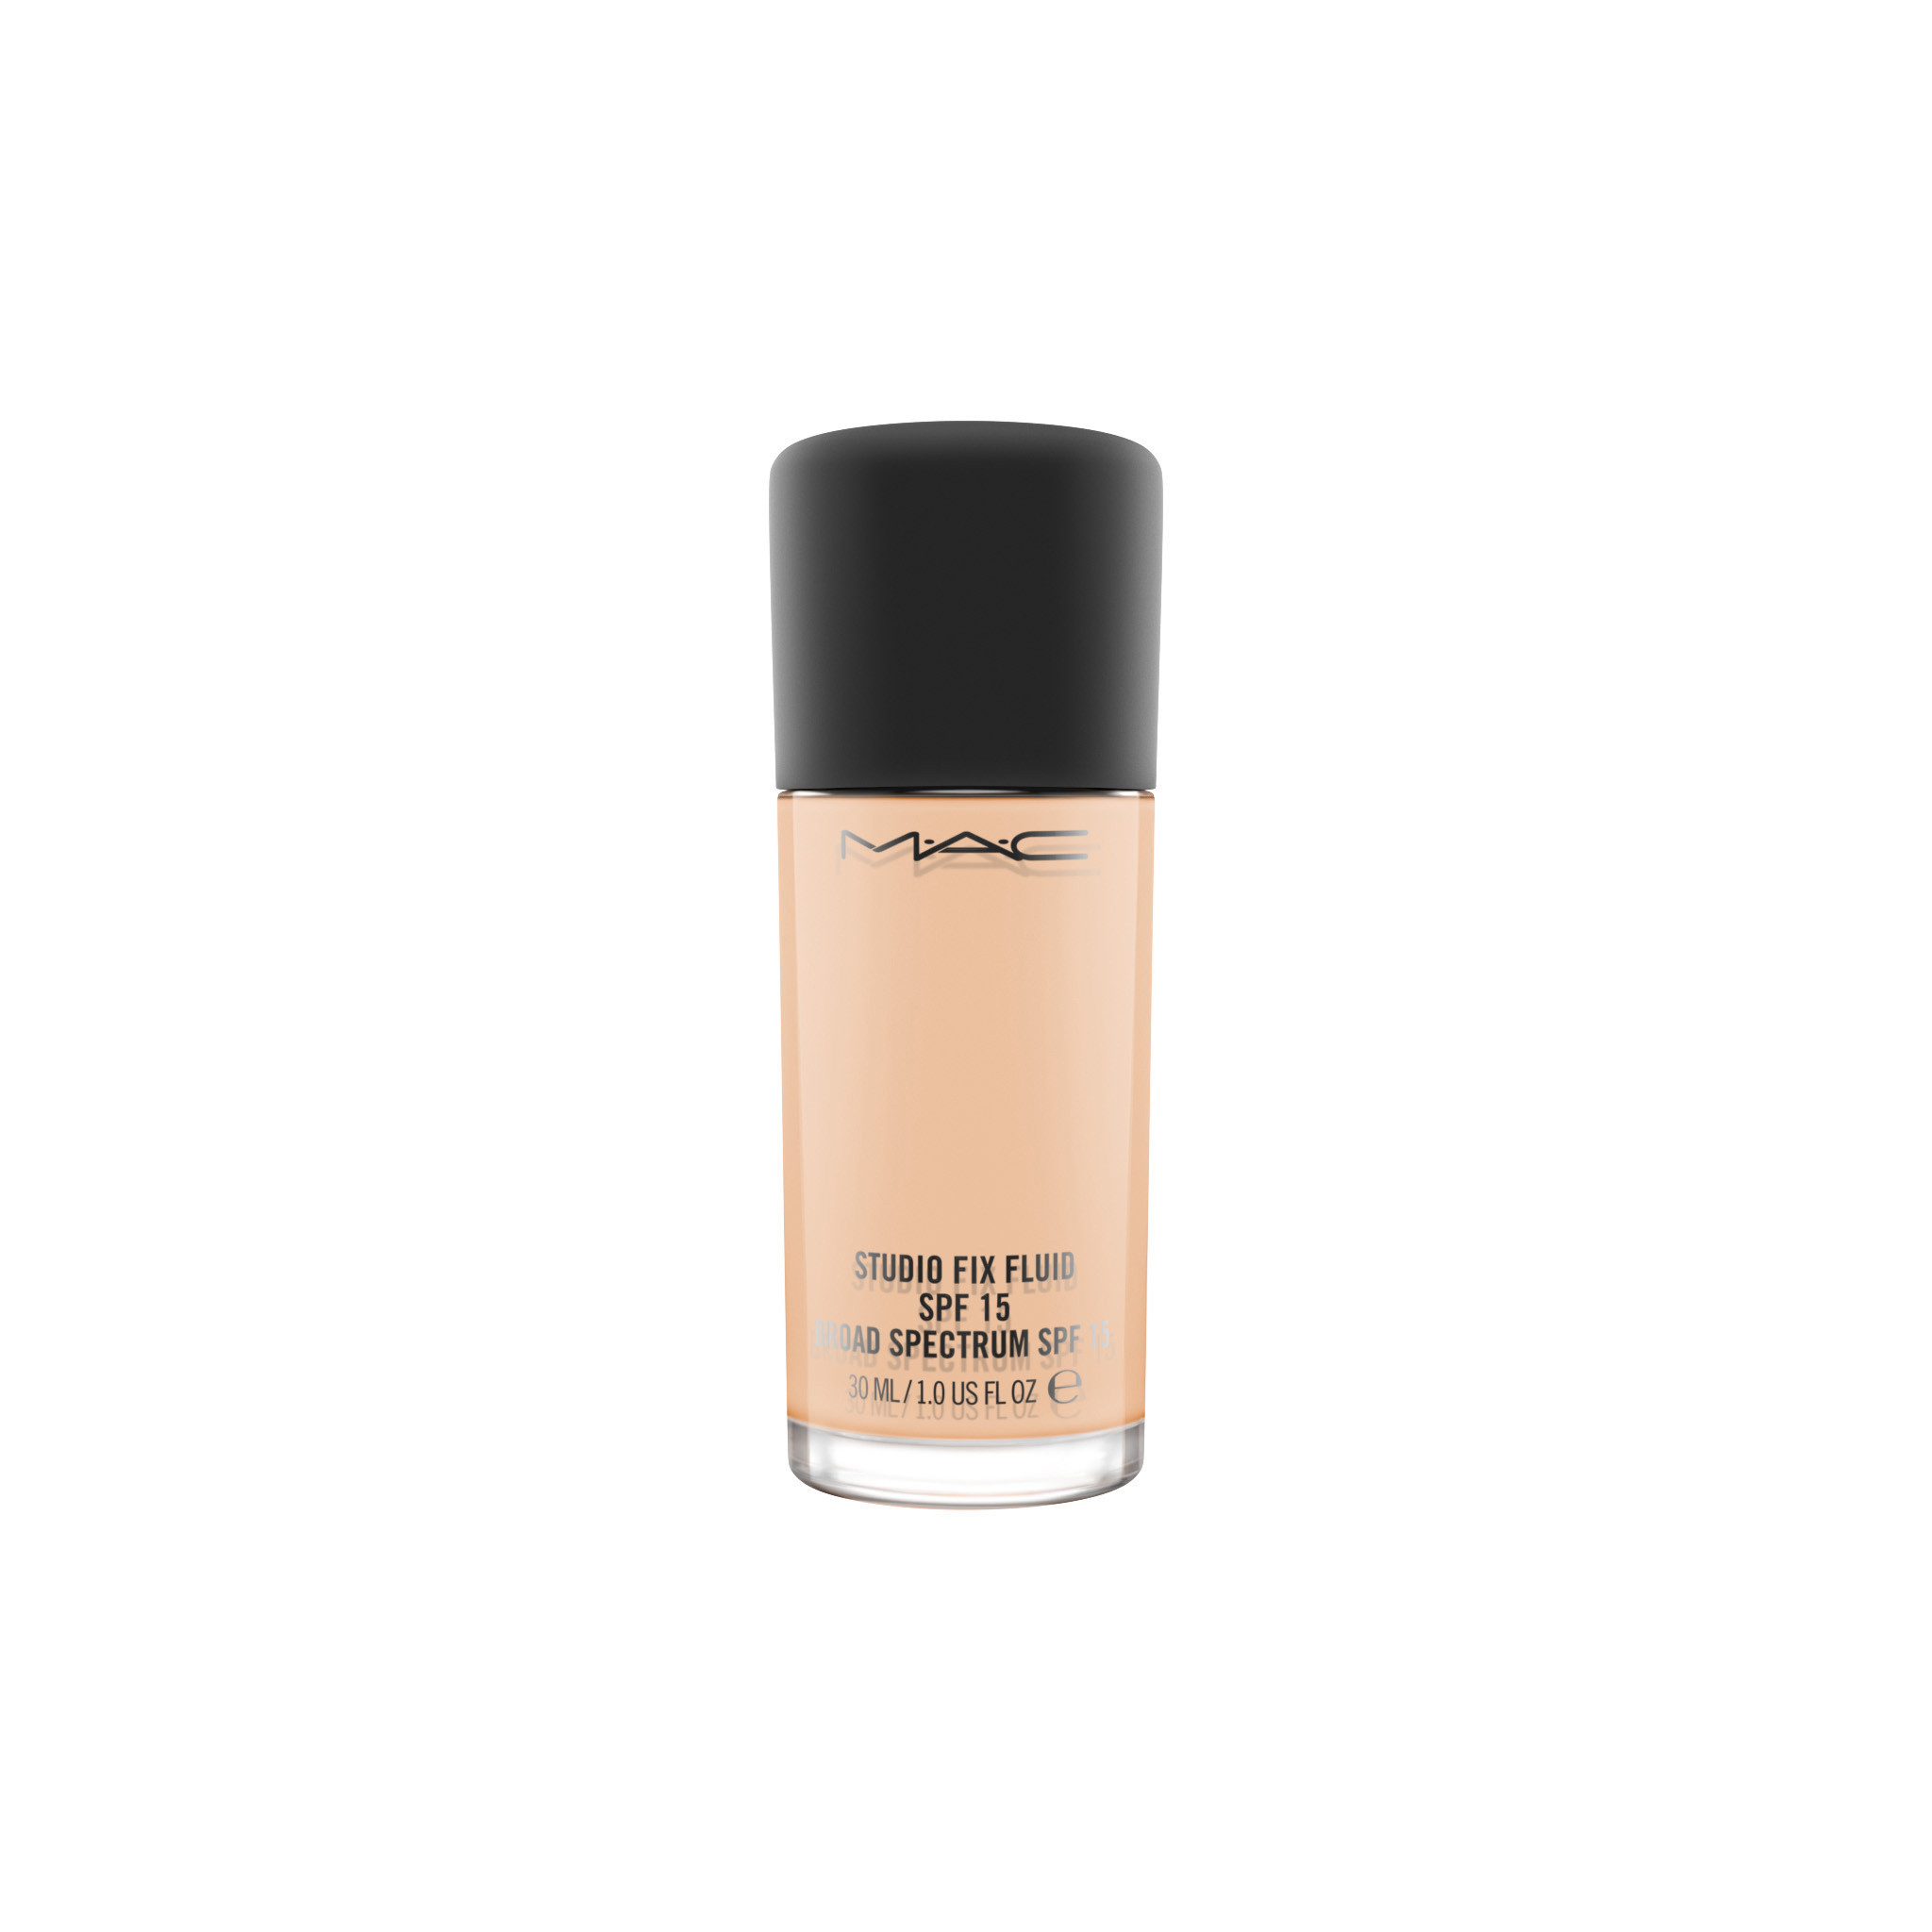 Studio Fix Fluid Foundation Spf15 - NW15, NW15, large image number 0